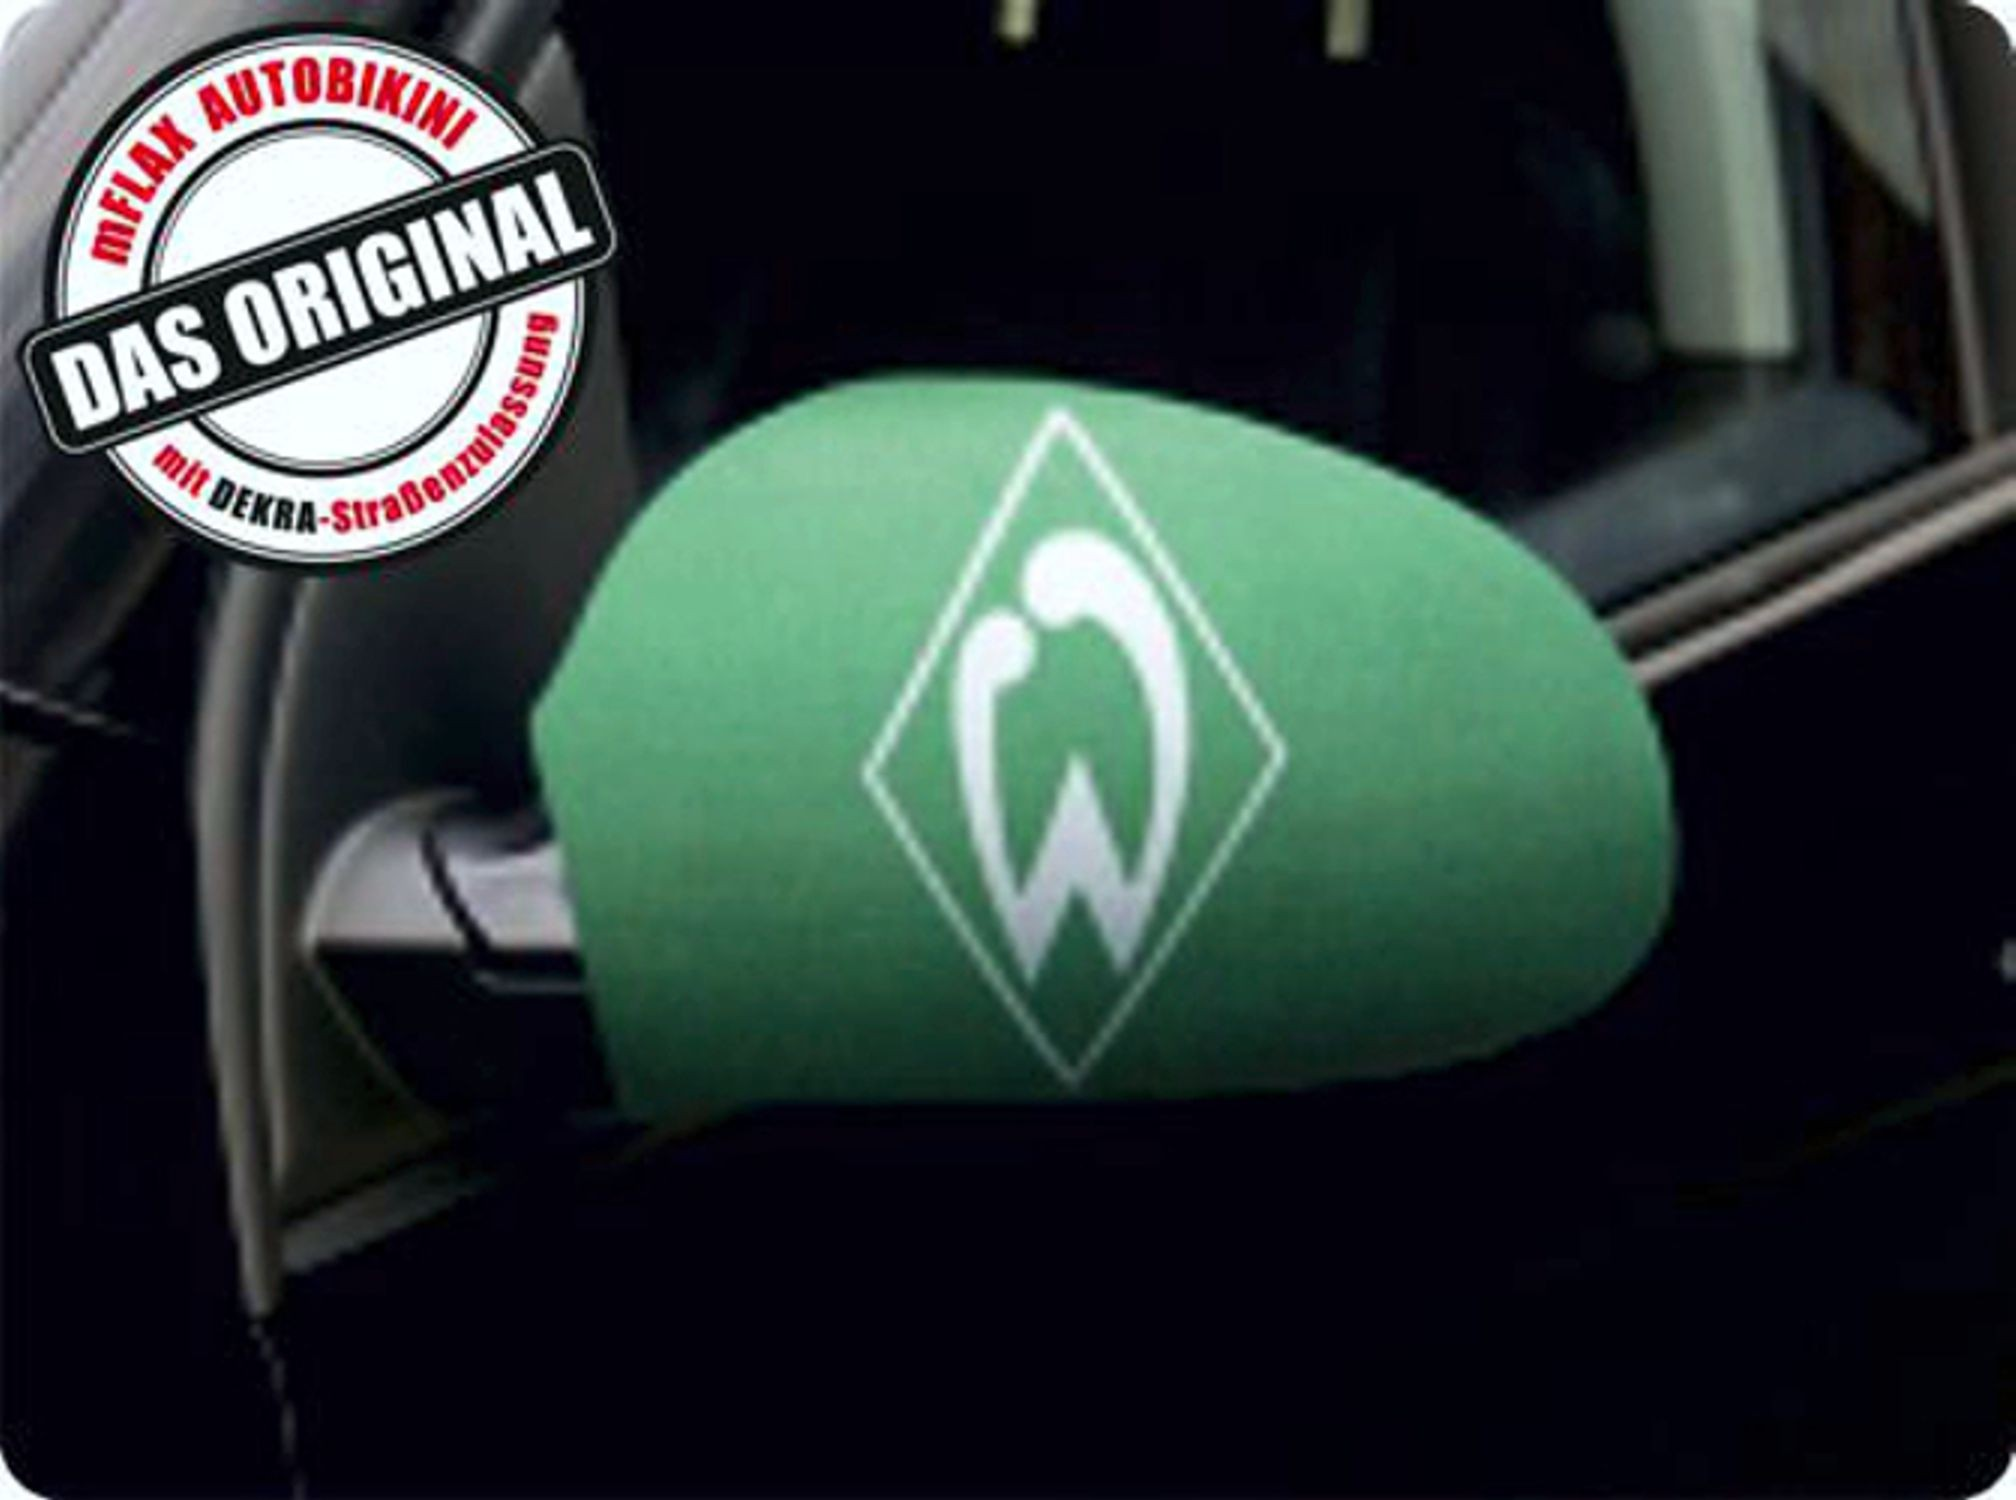 Car-Bikini set of 2 german football league SV Werder Bremen – Bild 1